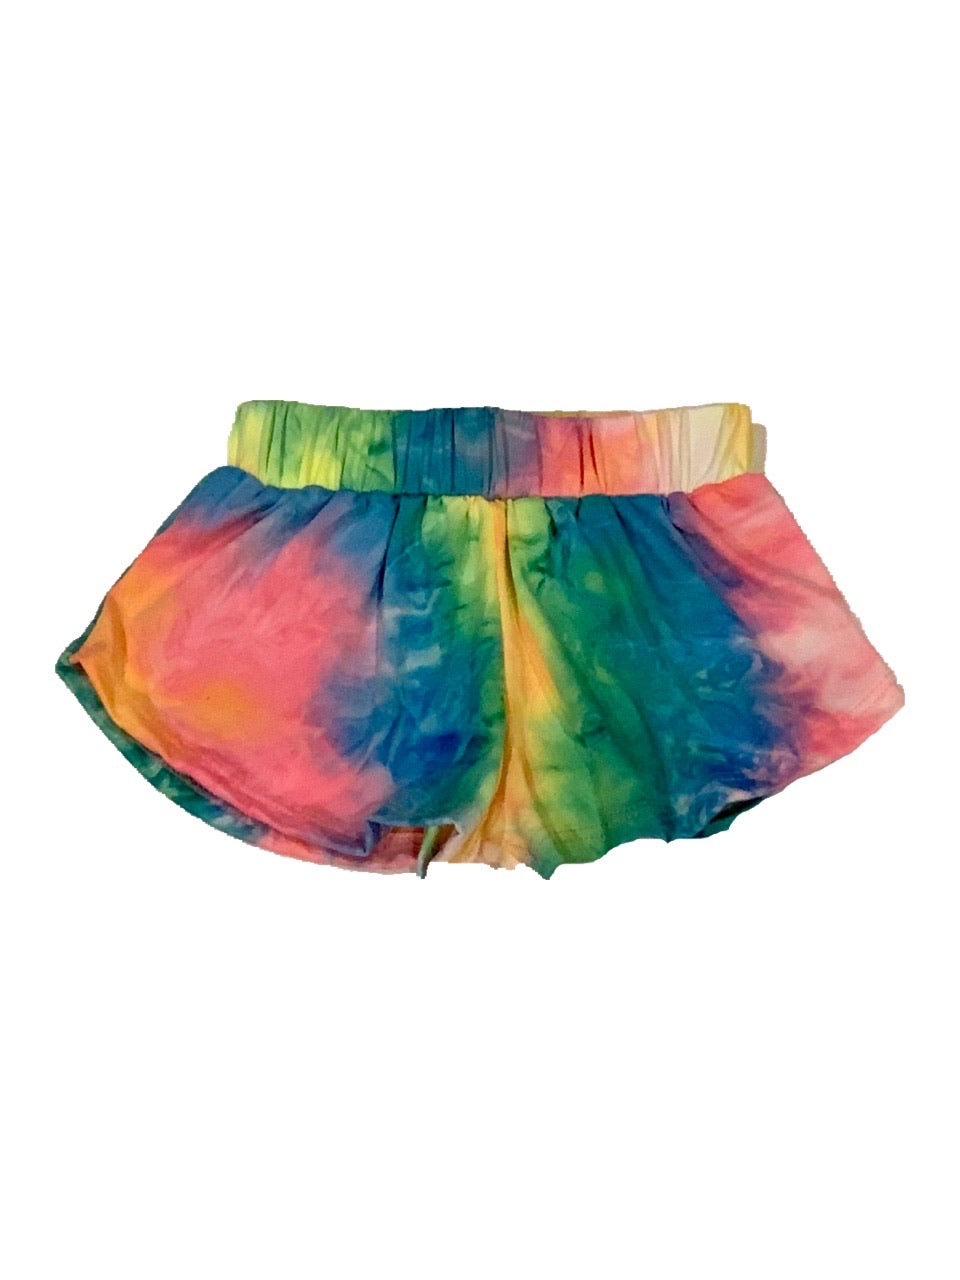 Dori Creations Bright Neon Running Shorts